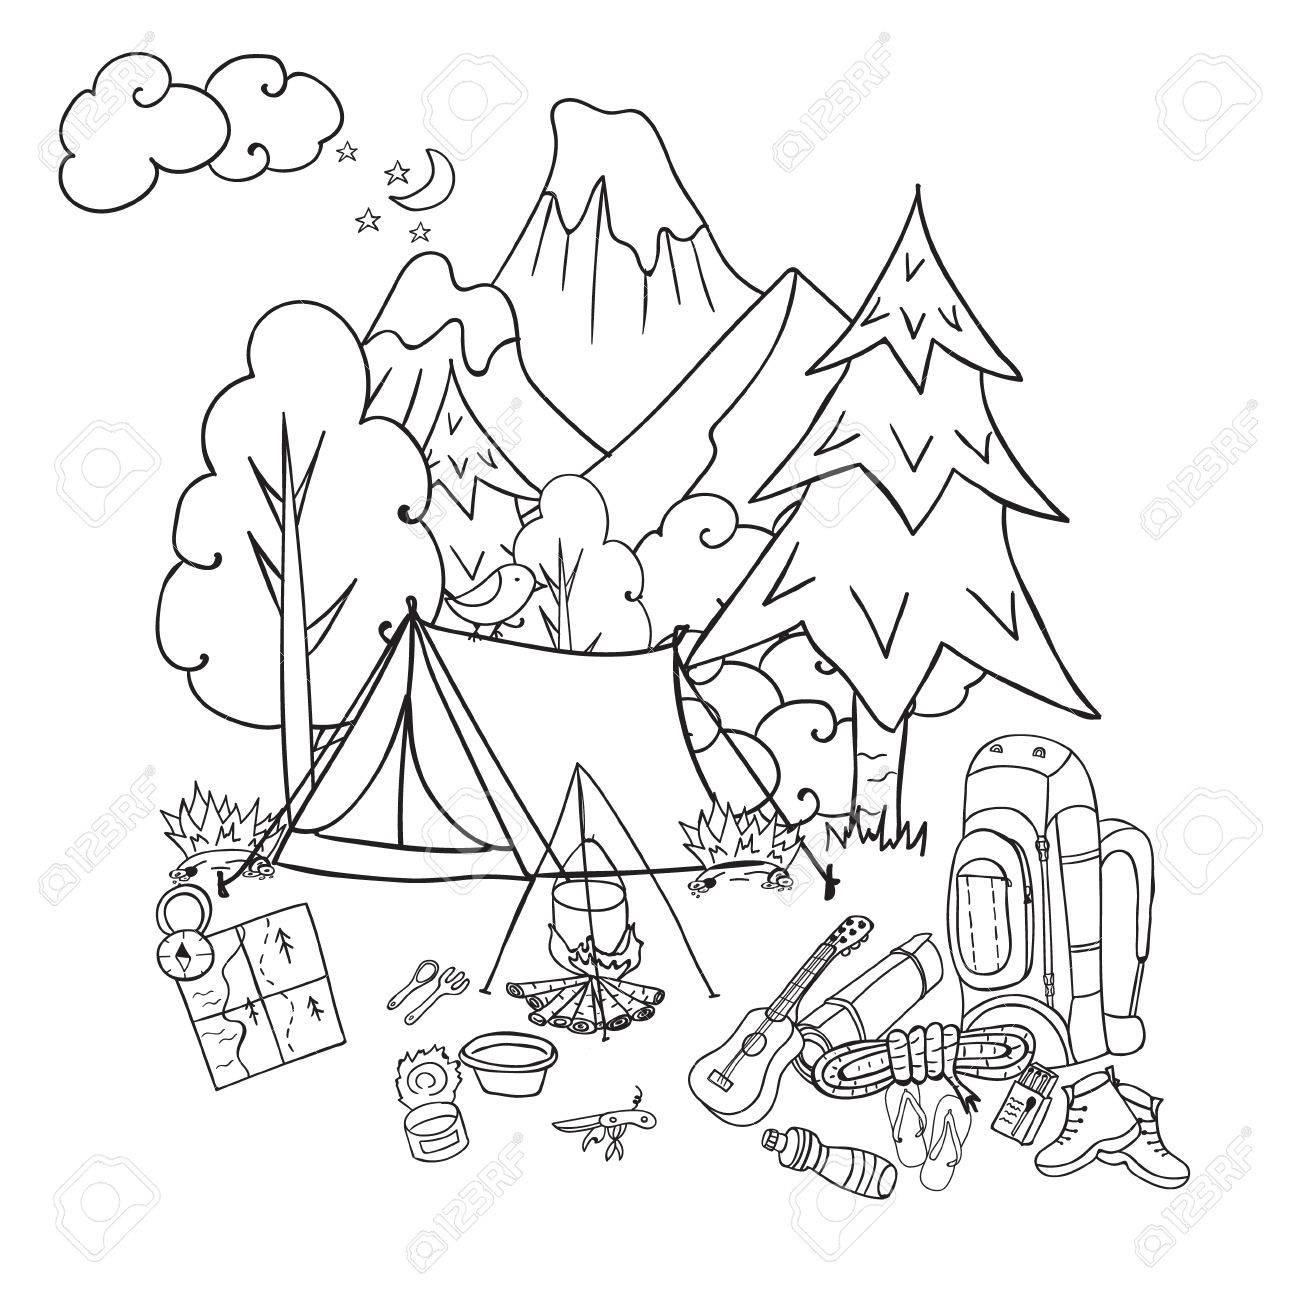 Hiking Camping And Outdoor Recreation Concept With Tent Trees Bonfire Hand Drawn